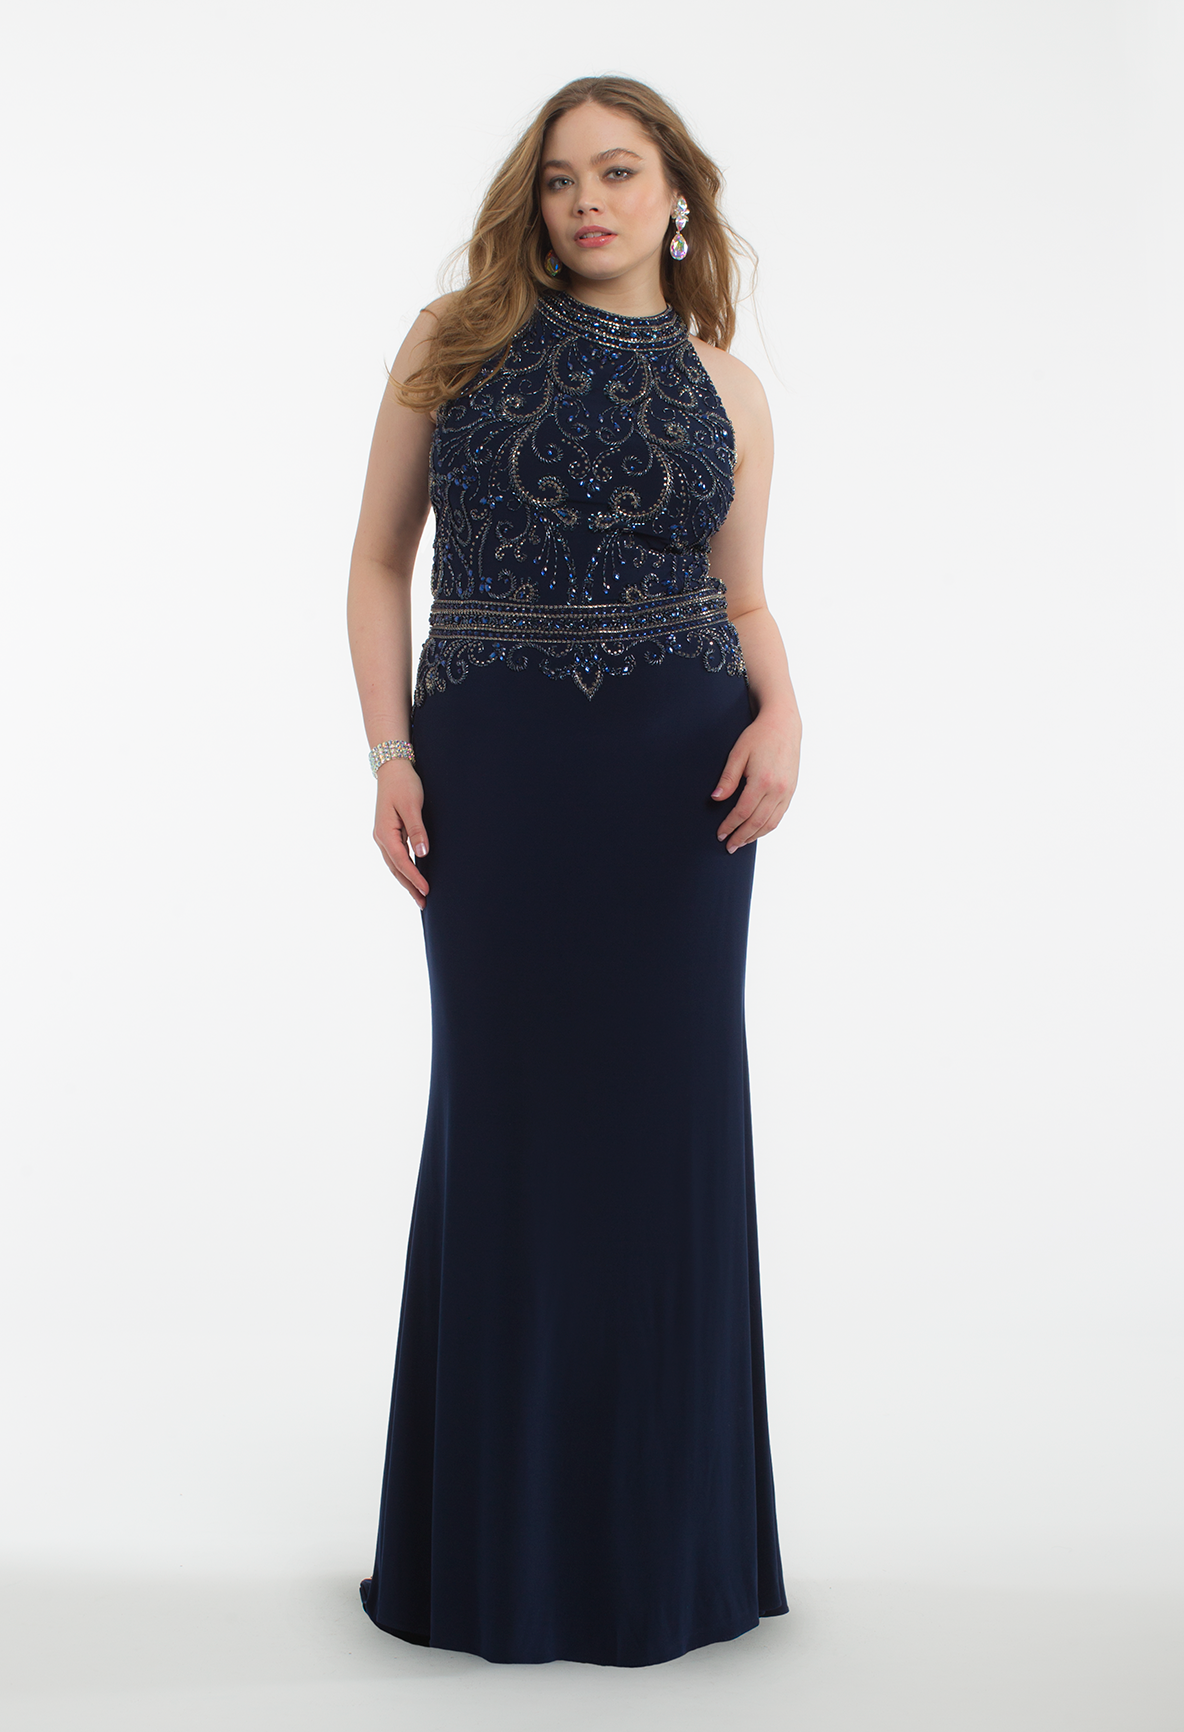 Everyone Will Be Looking Your Way When You Arrive In This Sleek Evening Gown The Cleo Collar Neckline Fitted Beaded Dresses Wedding Guest Dress Sparkly Dress [ 1732 x 1184 Pixel ]